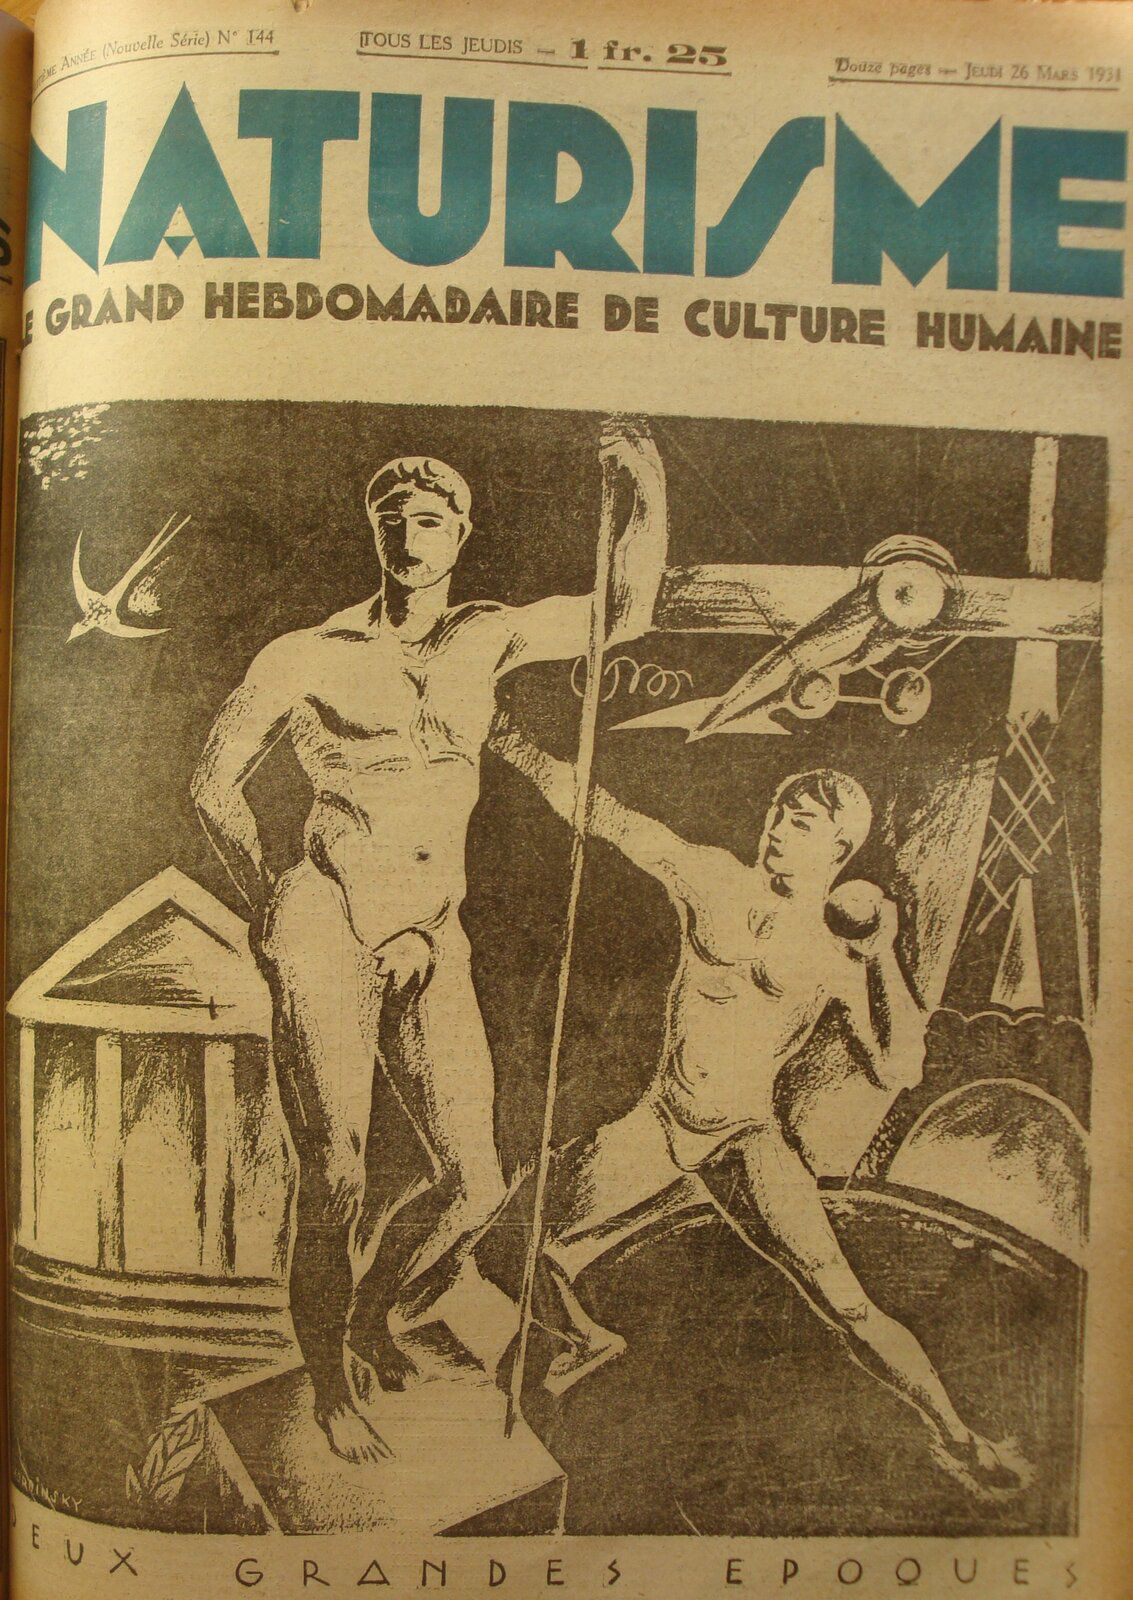 26 mars 1931 - Collection JMMAC